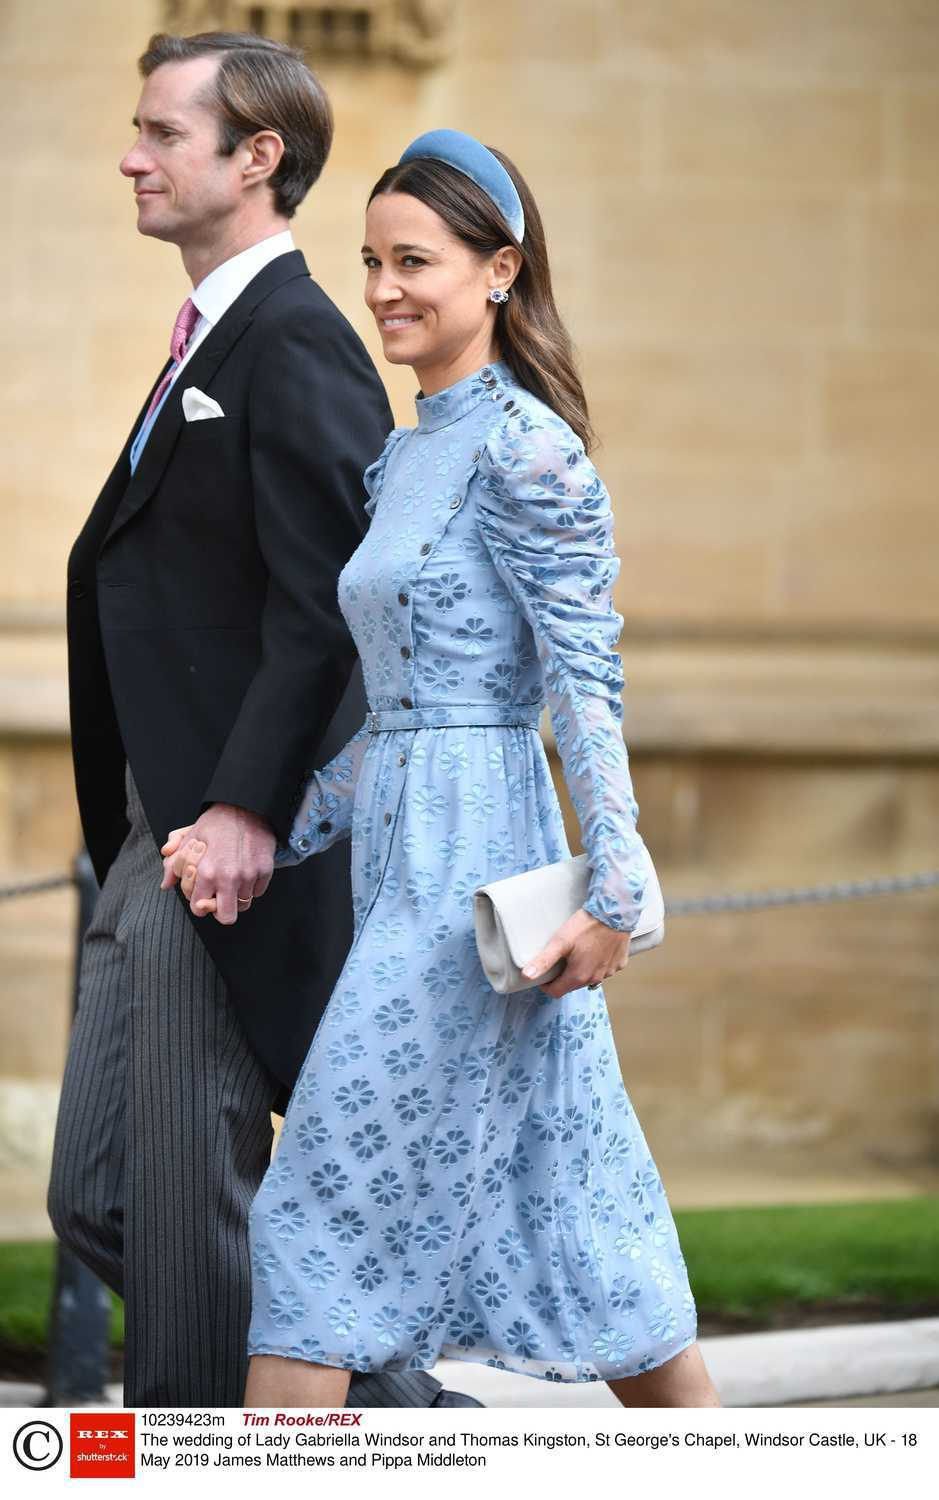 Pippa Middleton – ślub Lady Gabrielli Windsor